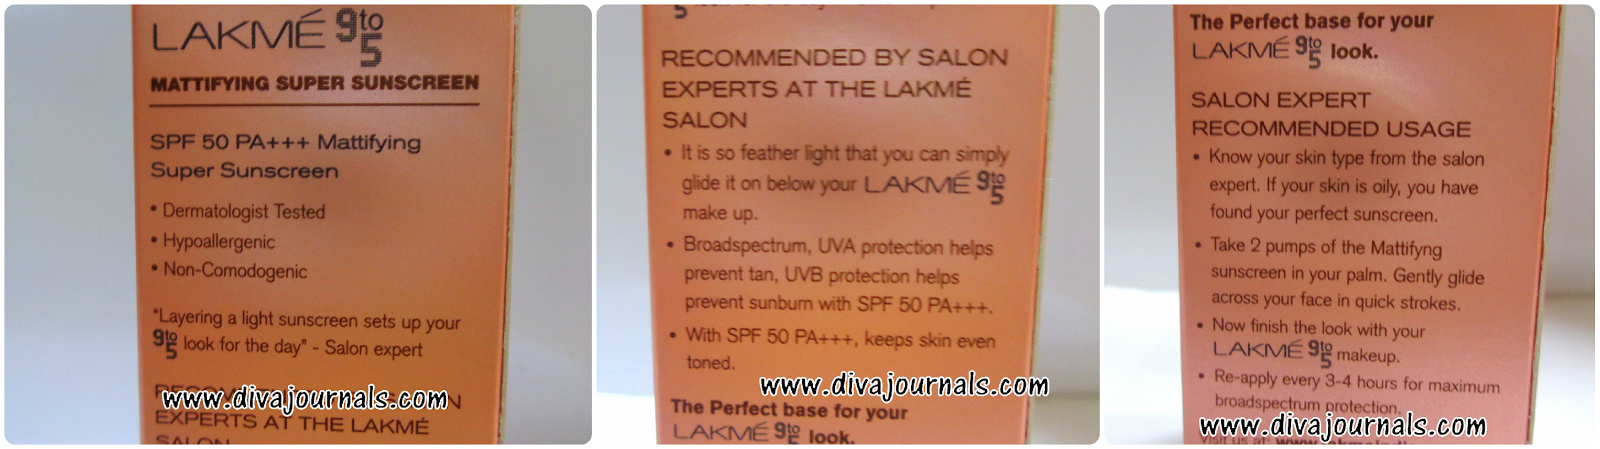 Lakme 9-to-5 Mattifying Super Sunscreen SPF 50 PA+++ Review